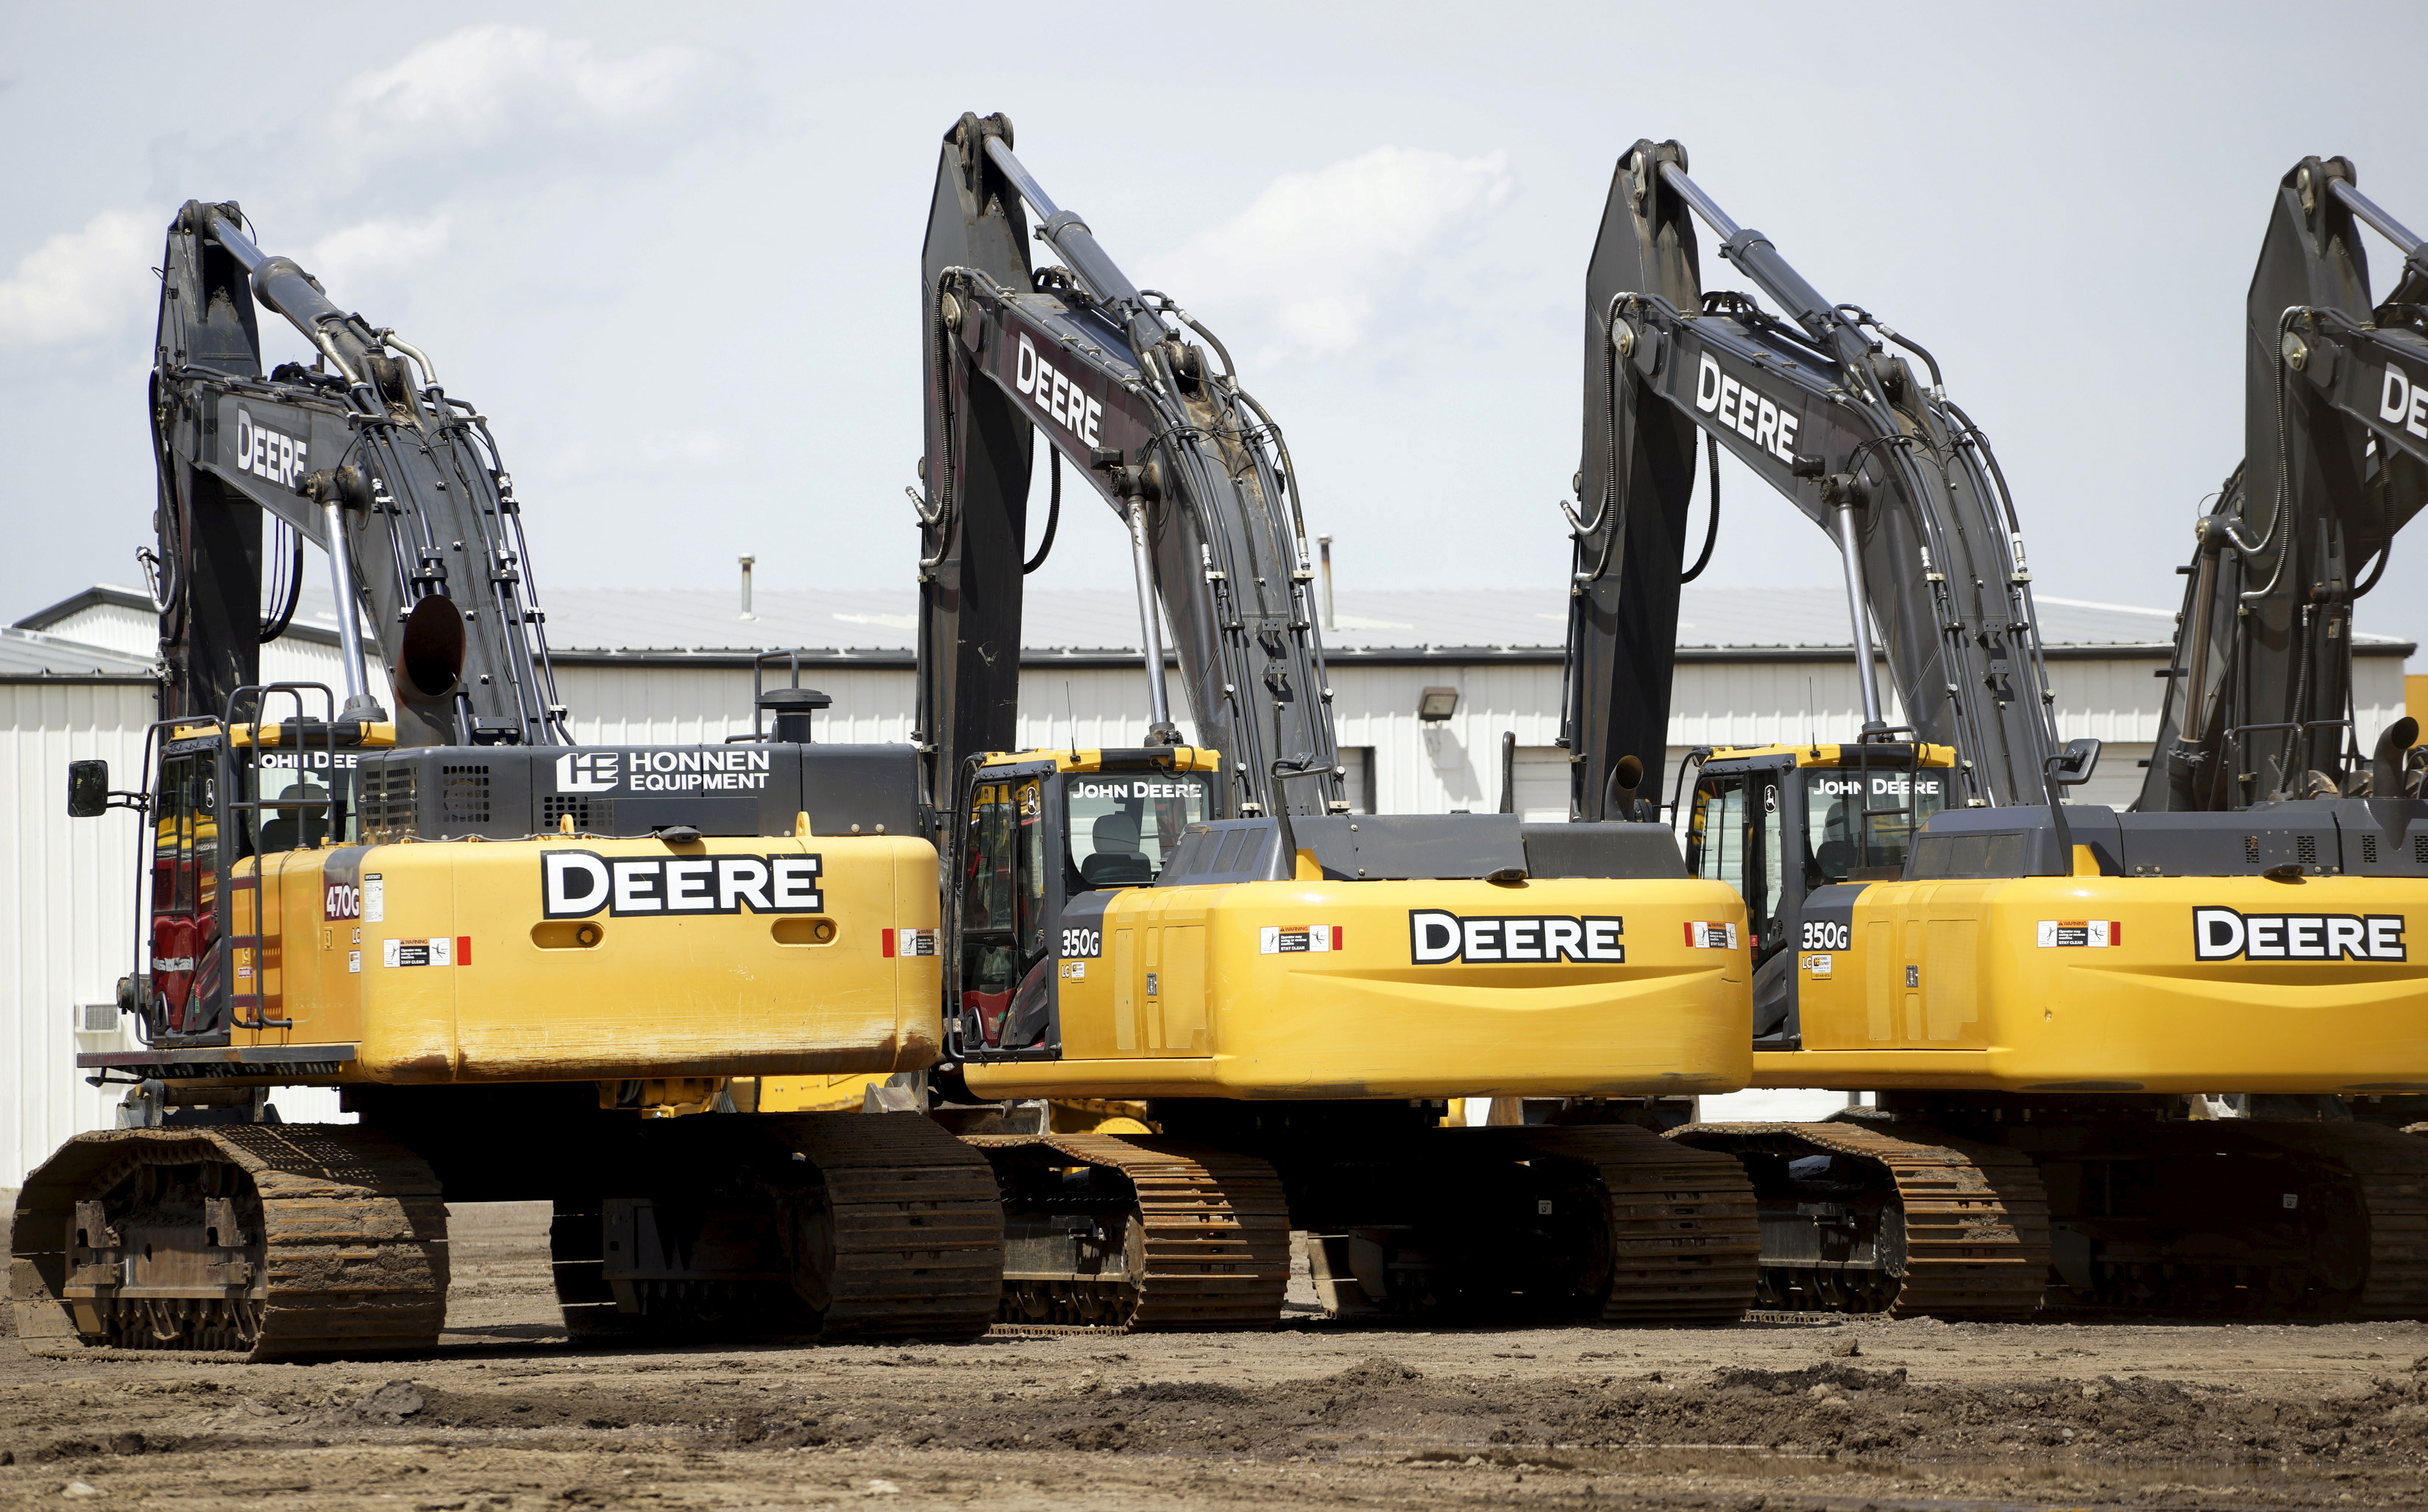 Equipment for sale is seen at a John Deere dealer in Denver May 14, 2015. REUTERS/Rick Wilking/File Photo